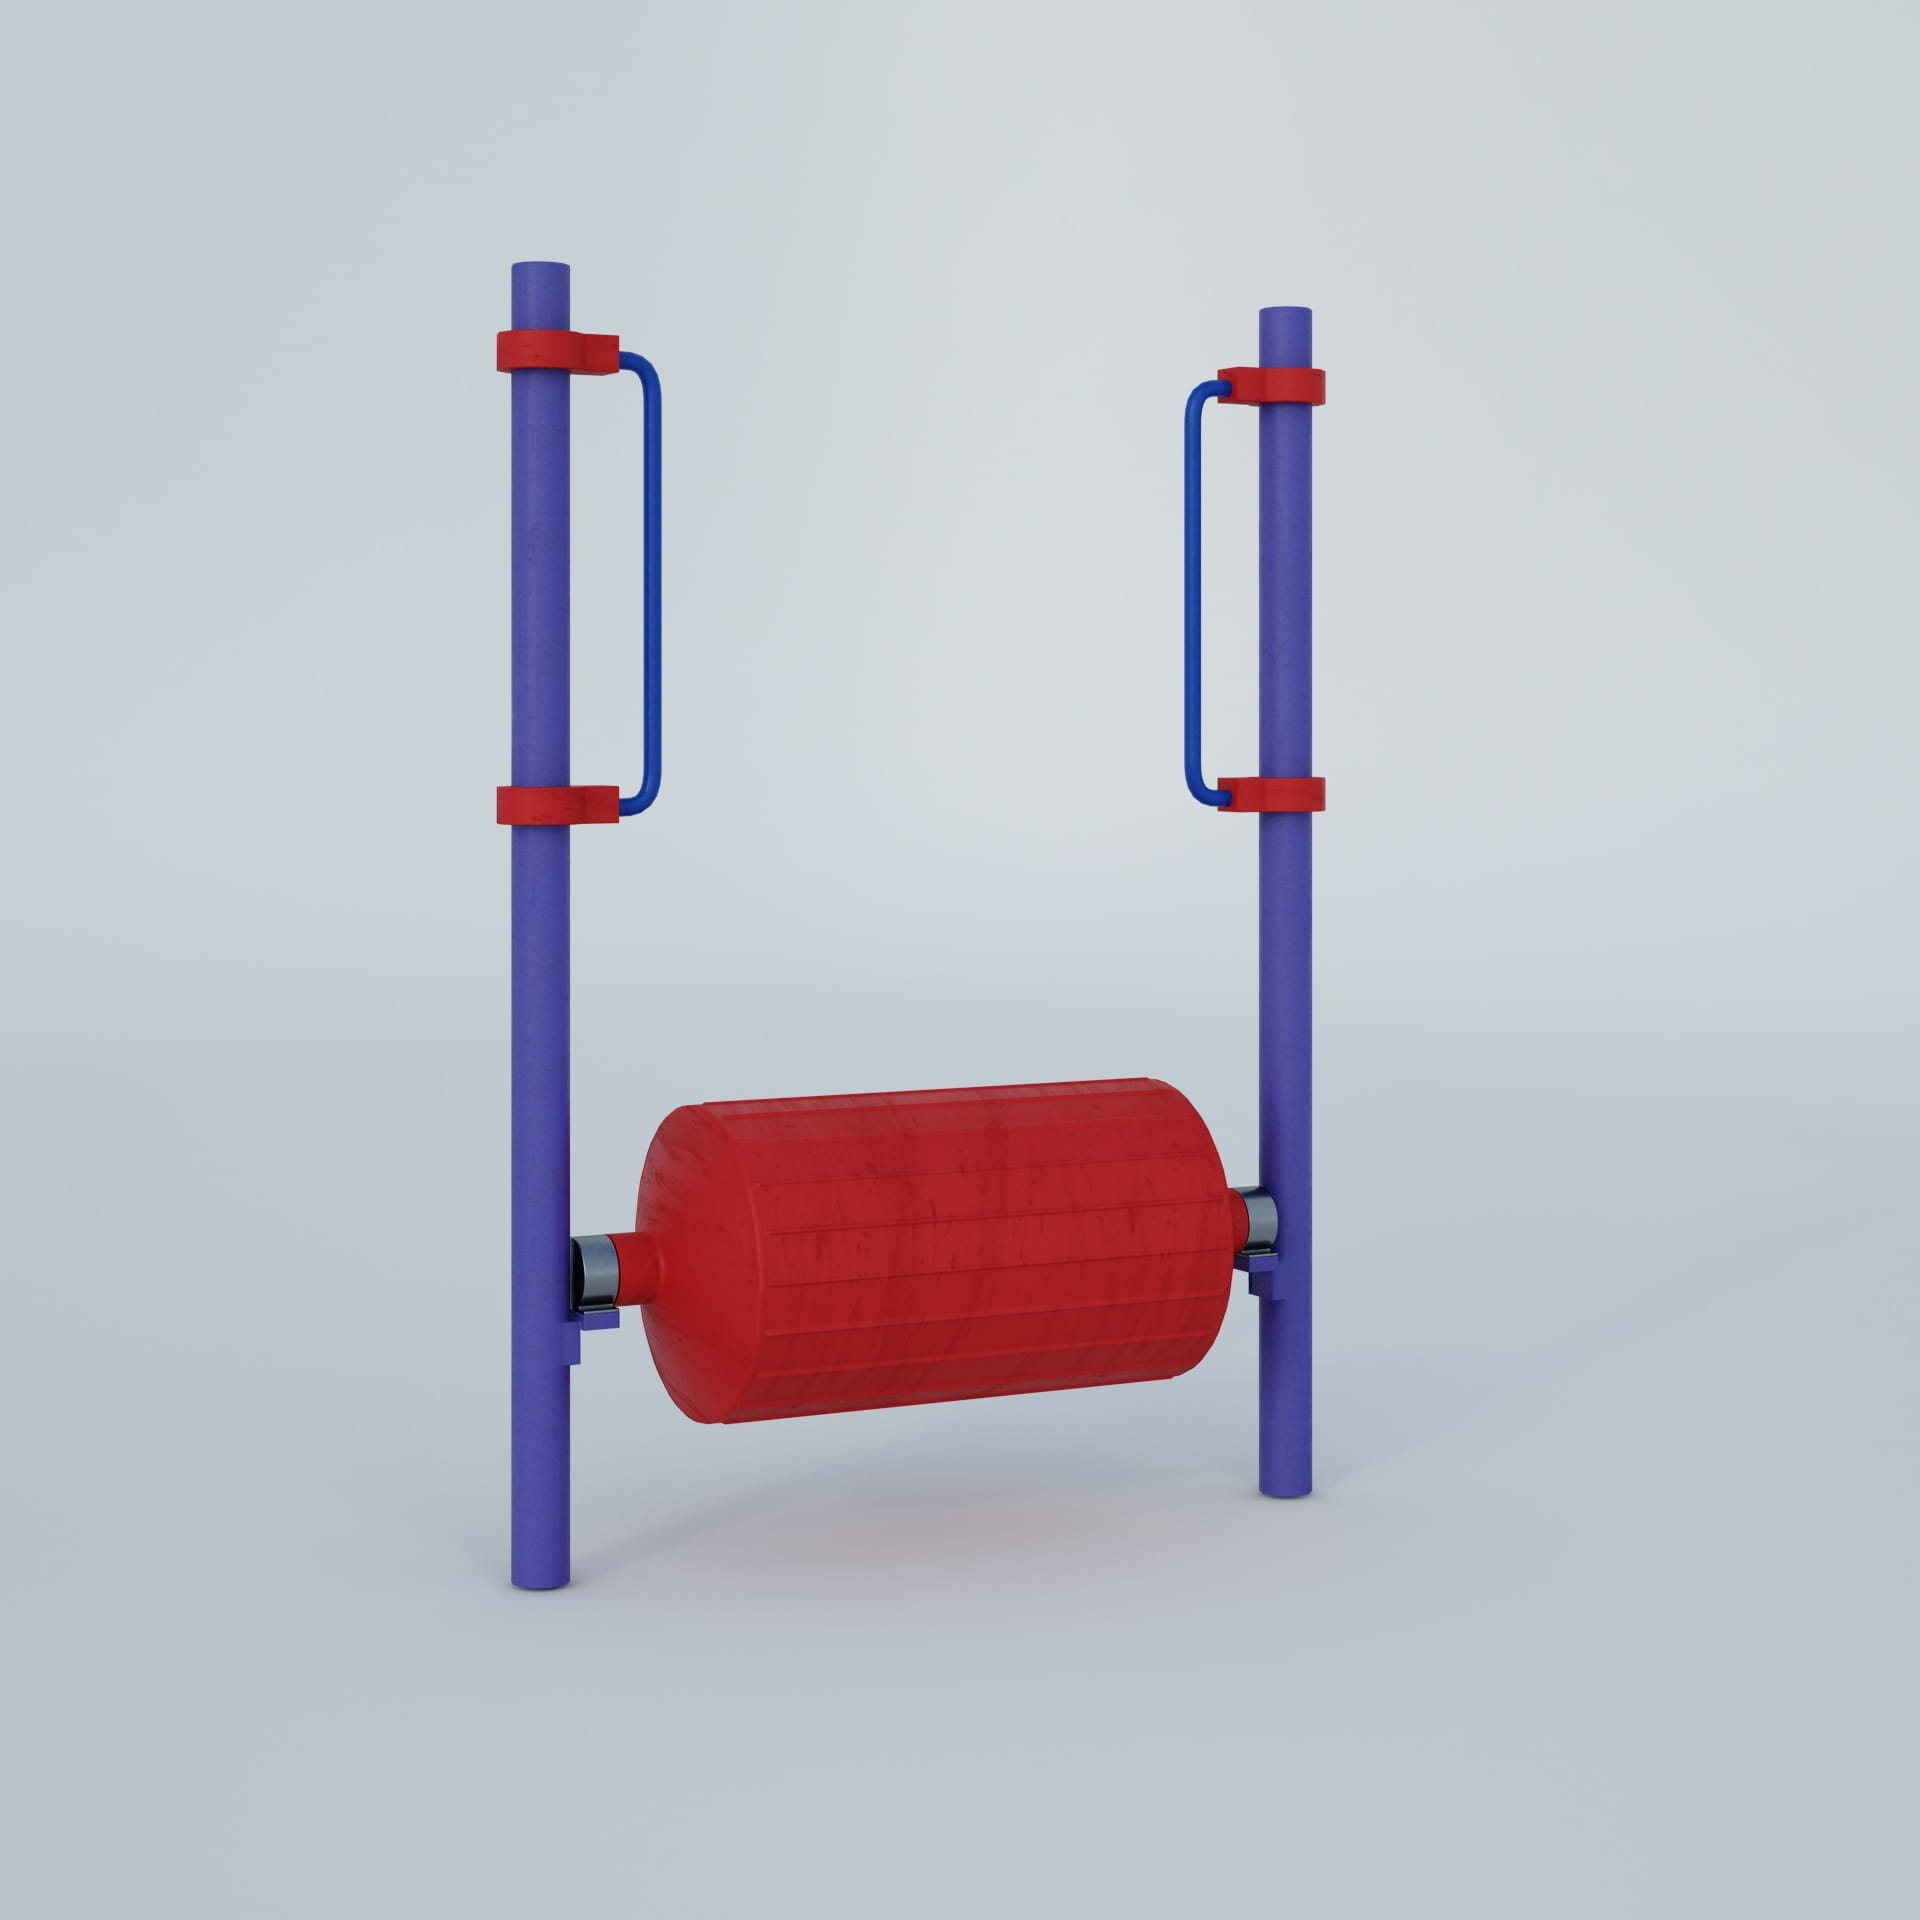 playground equipment 34 AM244 Archmodels